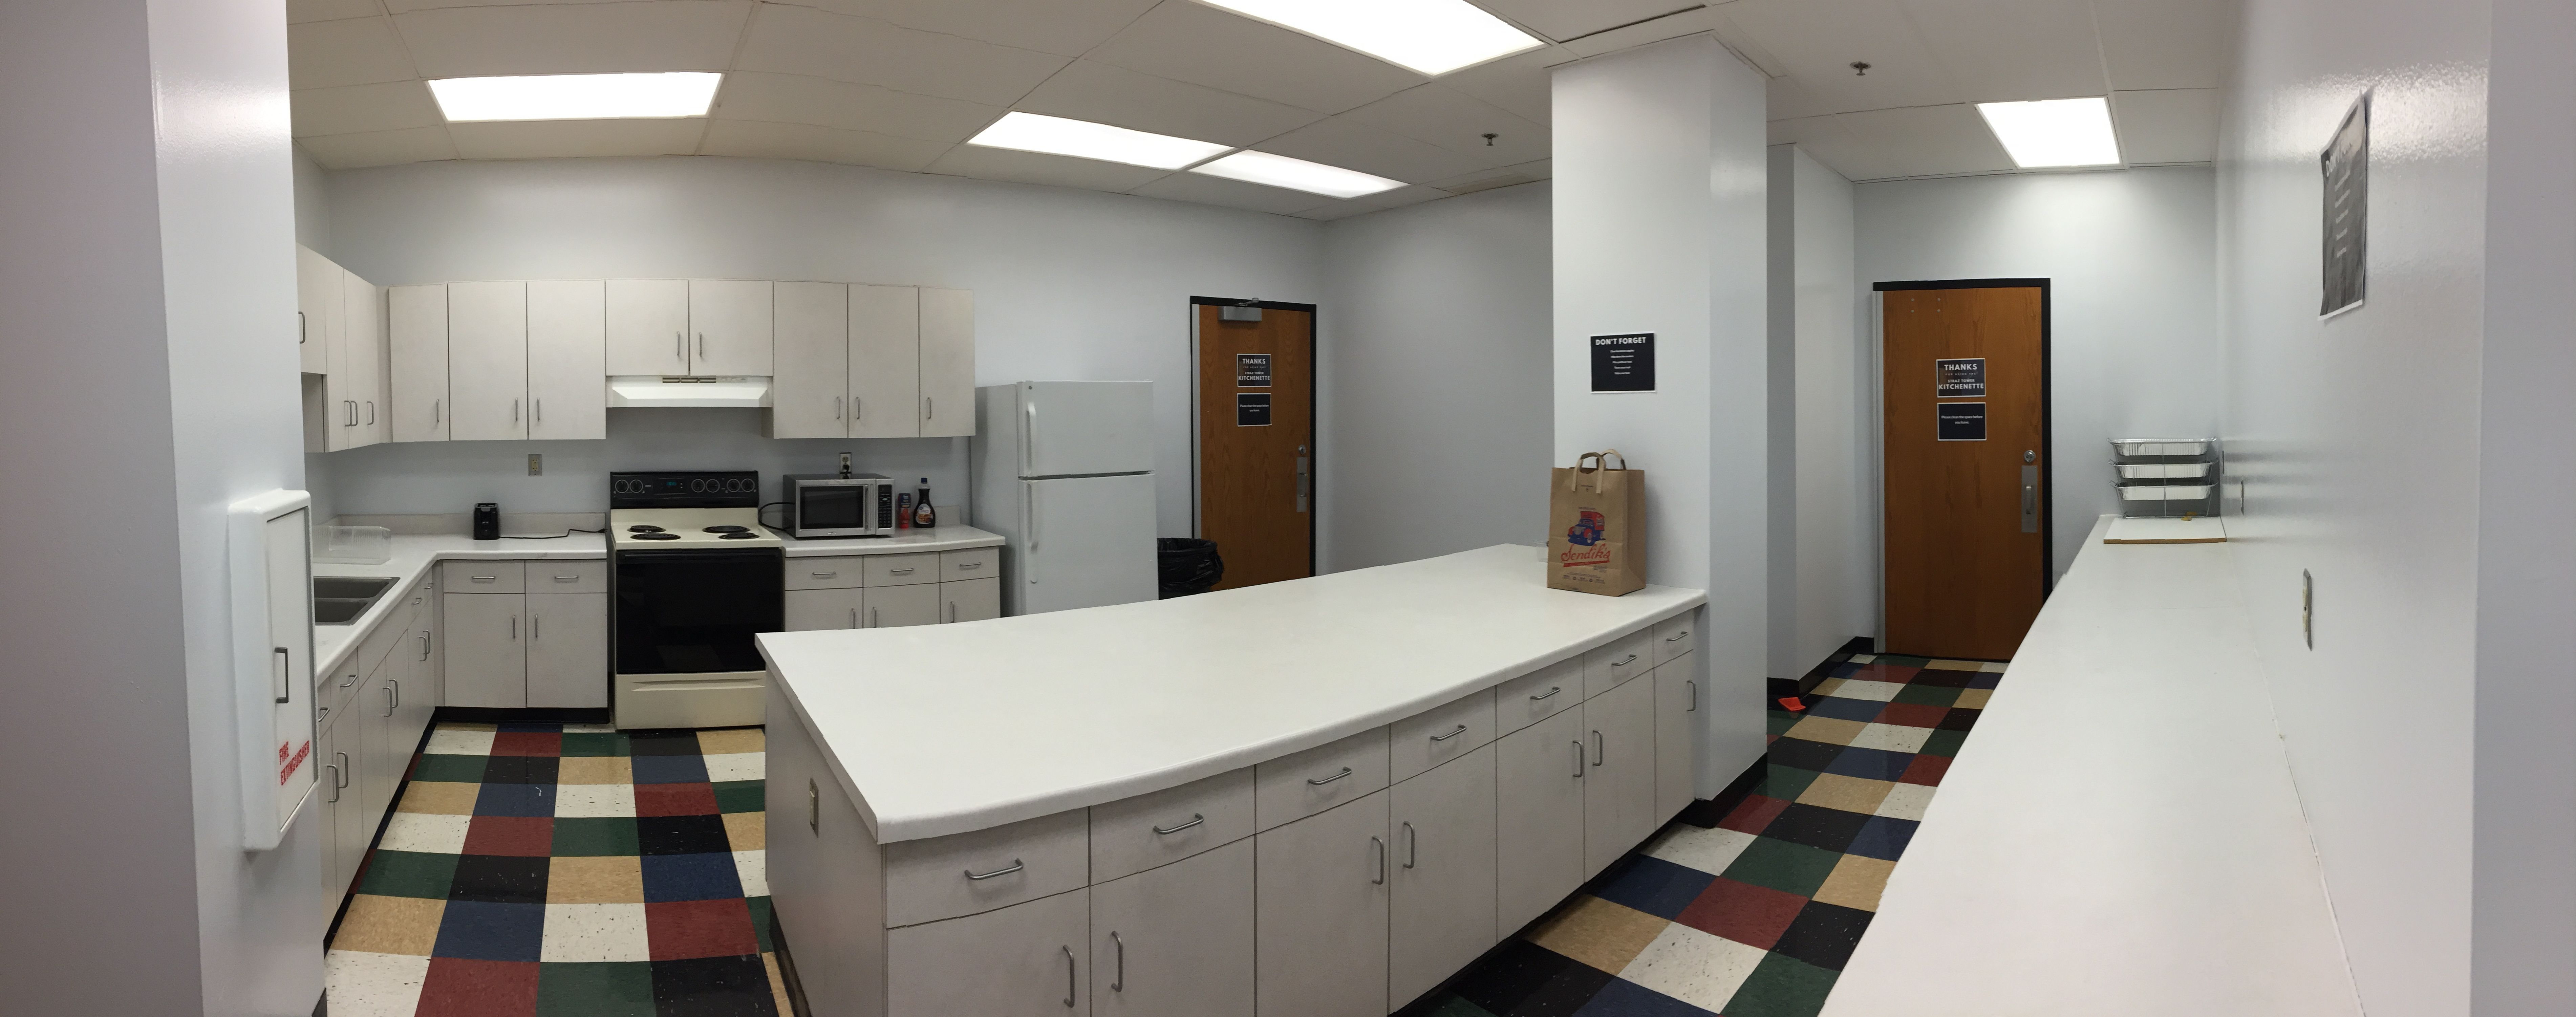 Marquette Academic Calendar 2021-22 Marquette University Straz Tower Residential Dorm kitchen in the